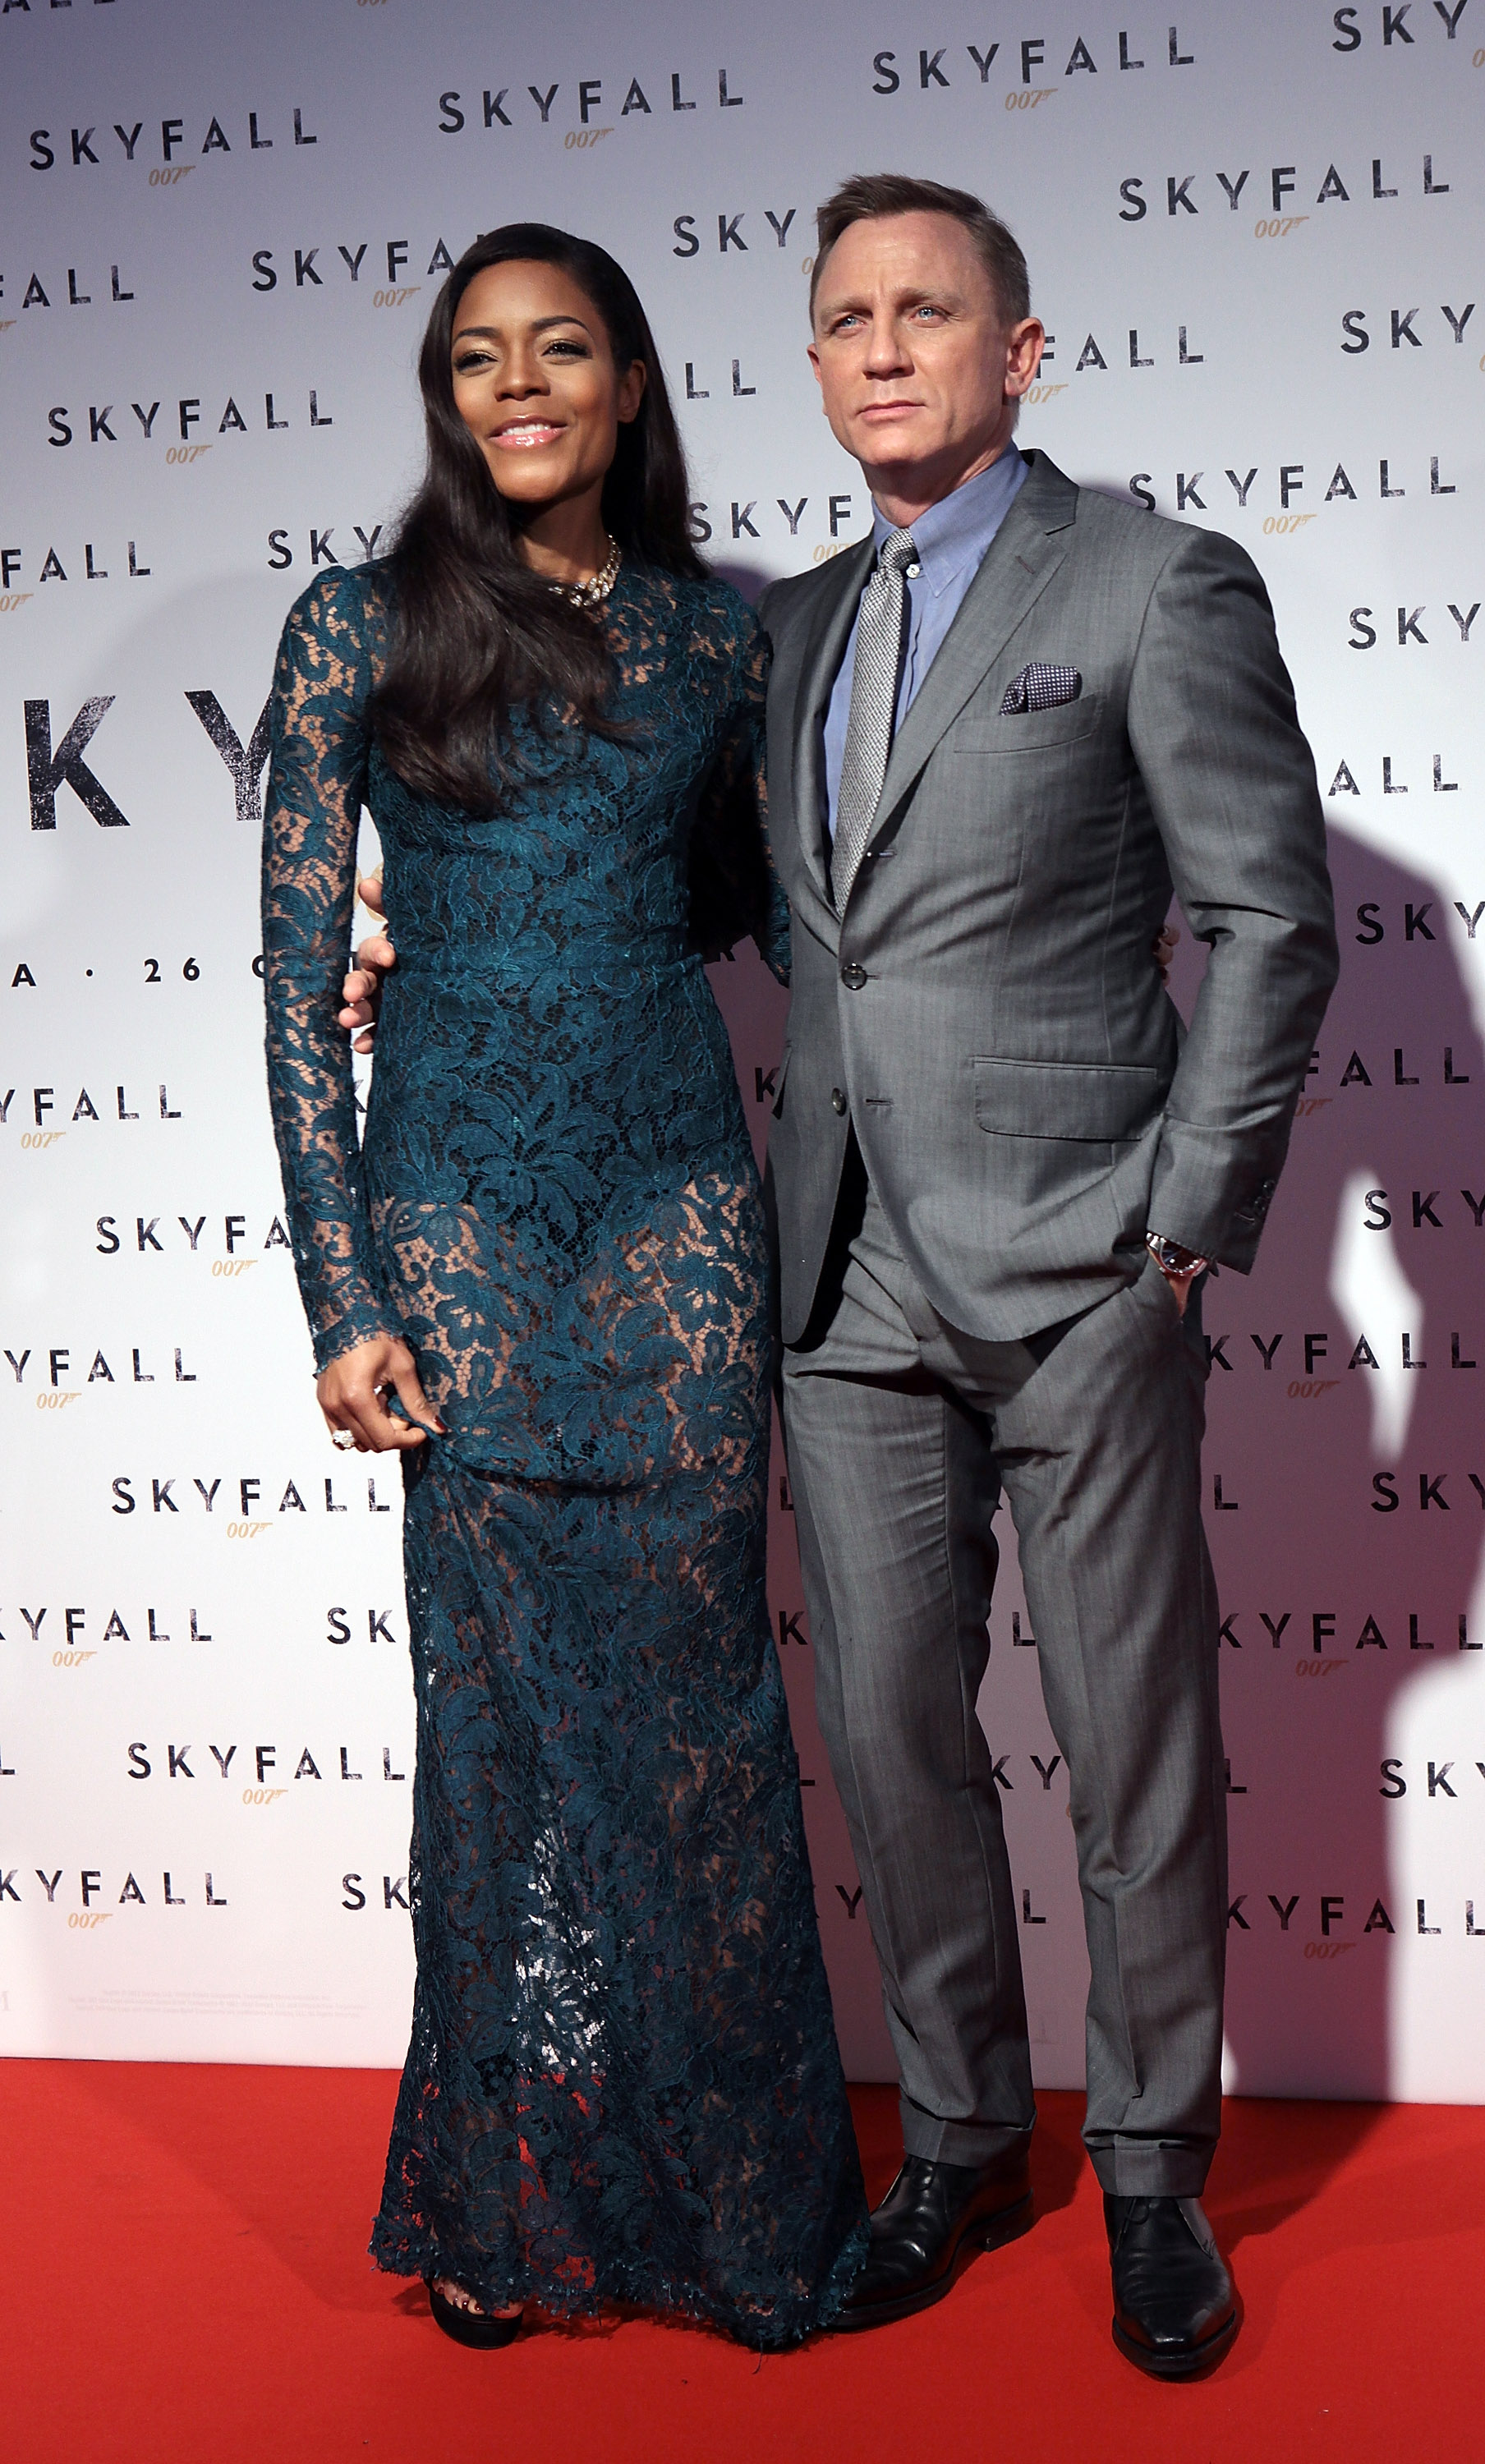 Daniel Craig and Naomie Harris posed side by side on the red carpet.